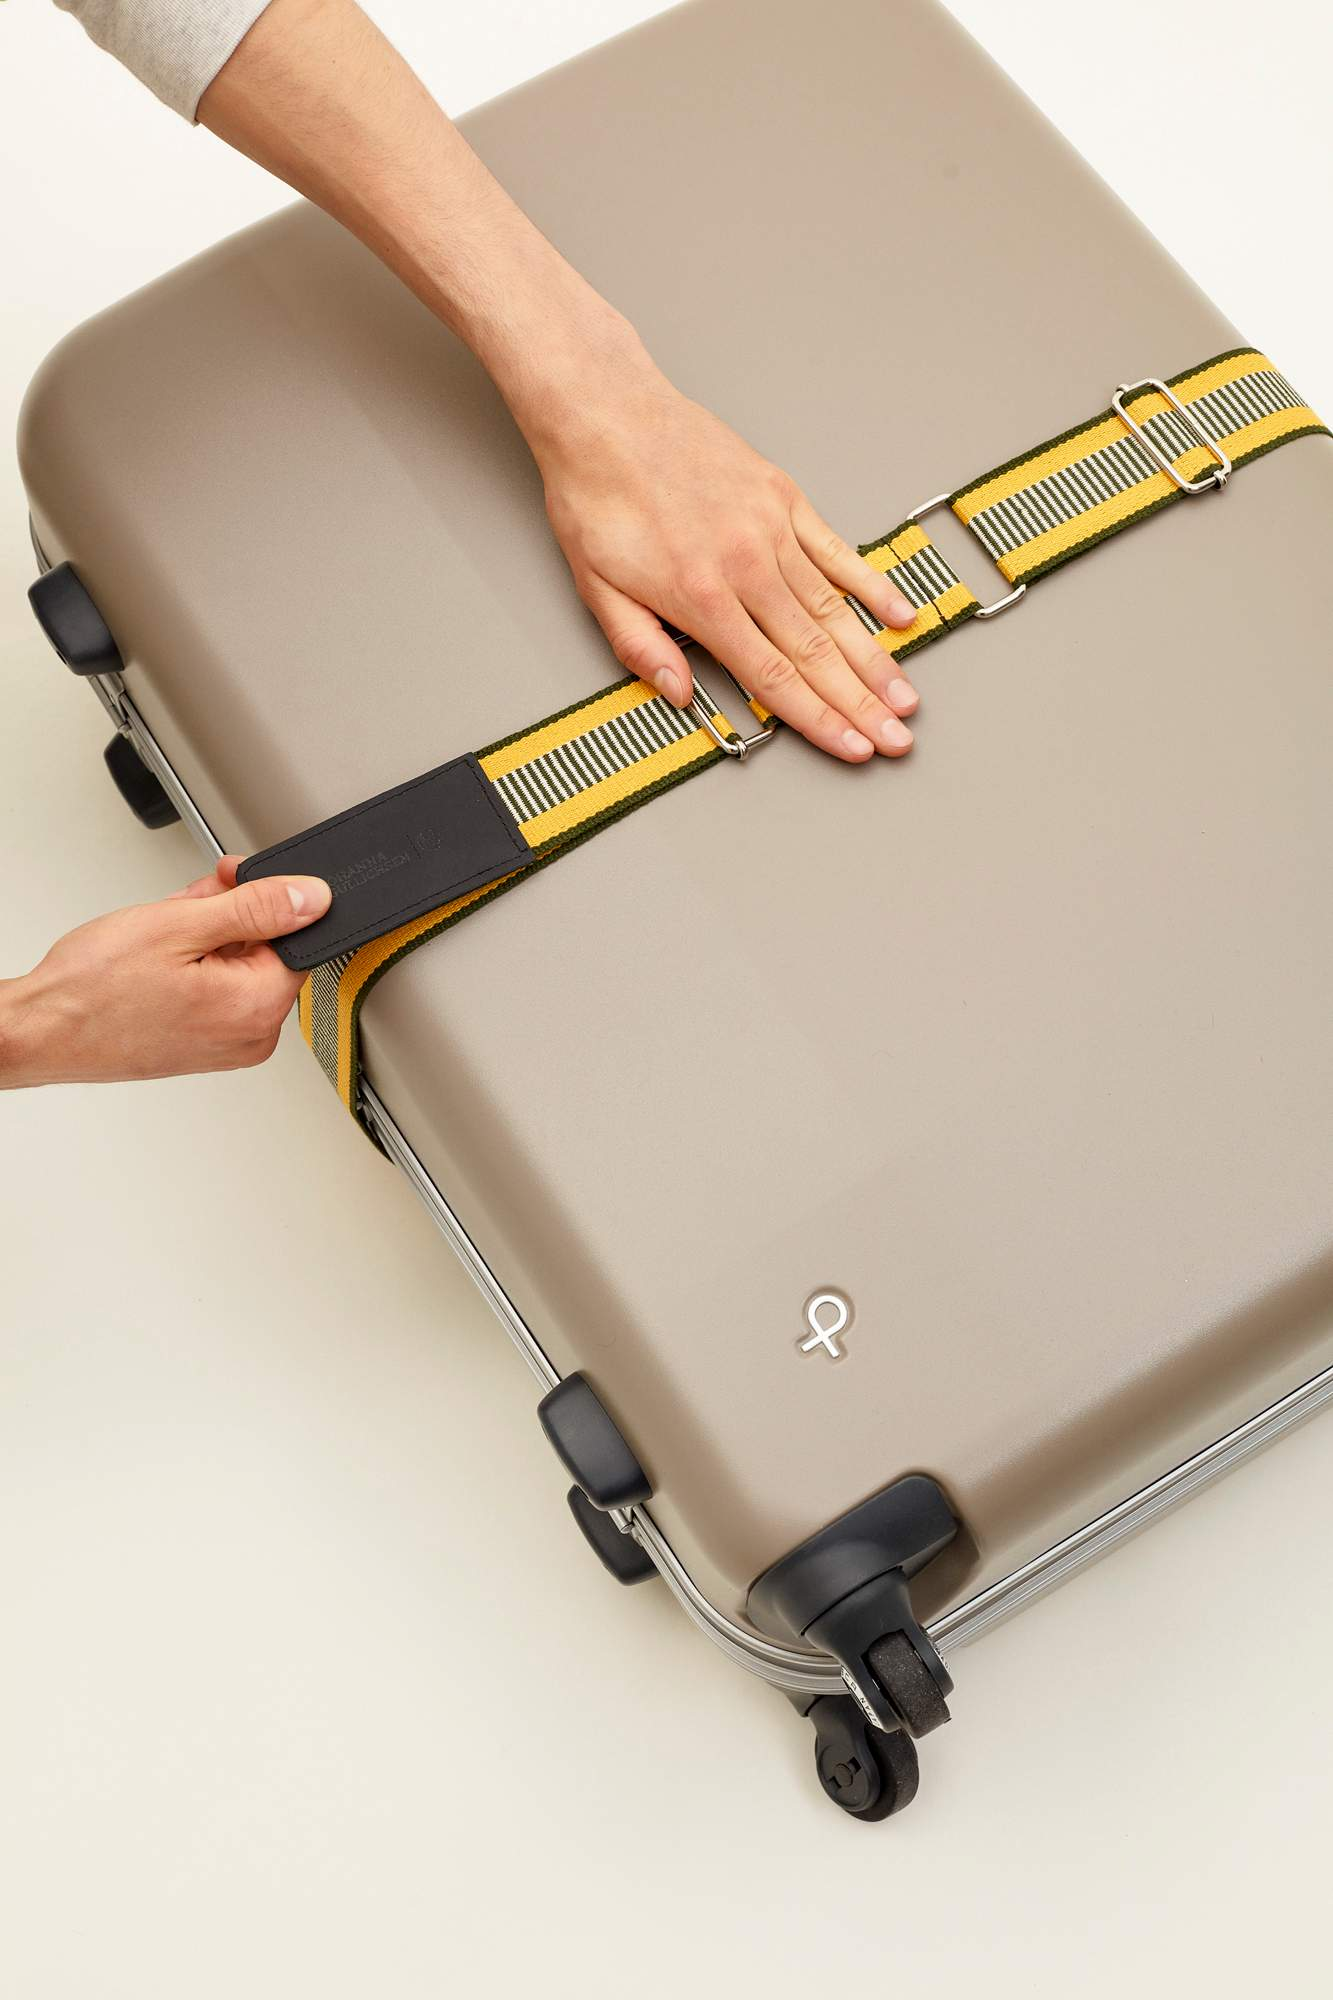 20200709-johanna-gullichsen-luggage-belt-yellow_017.jpg